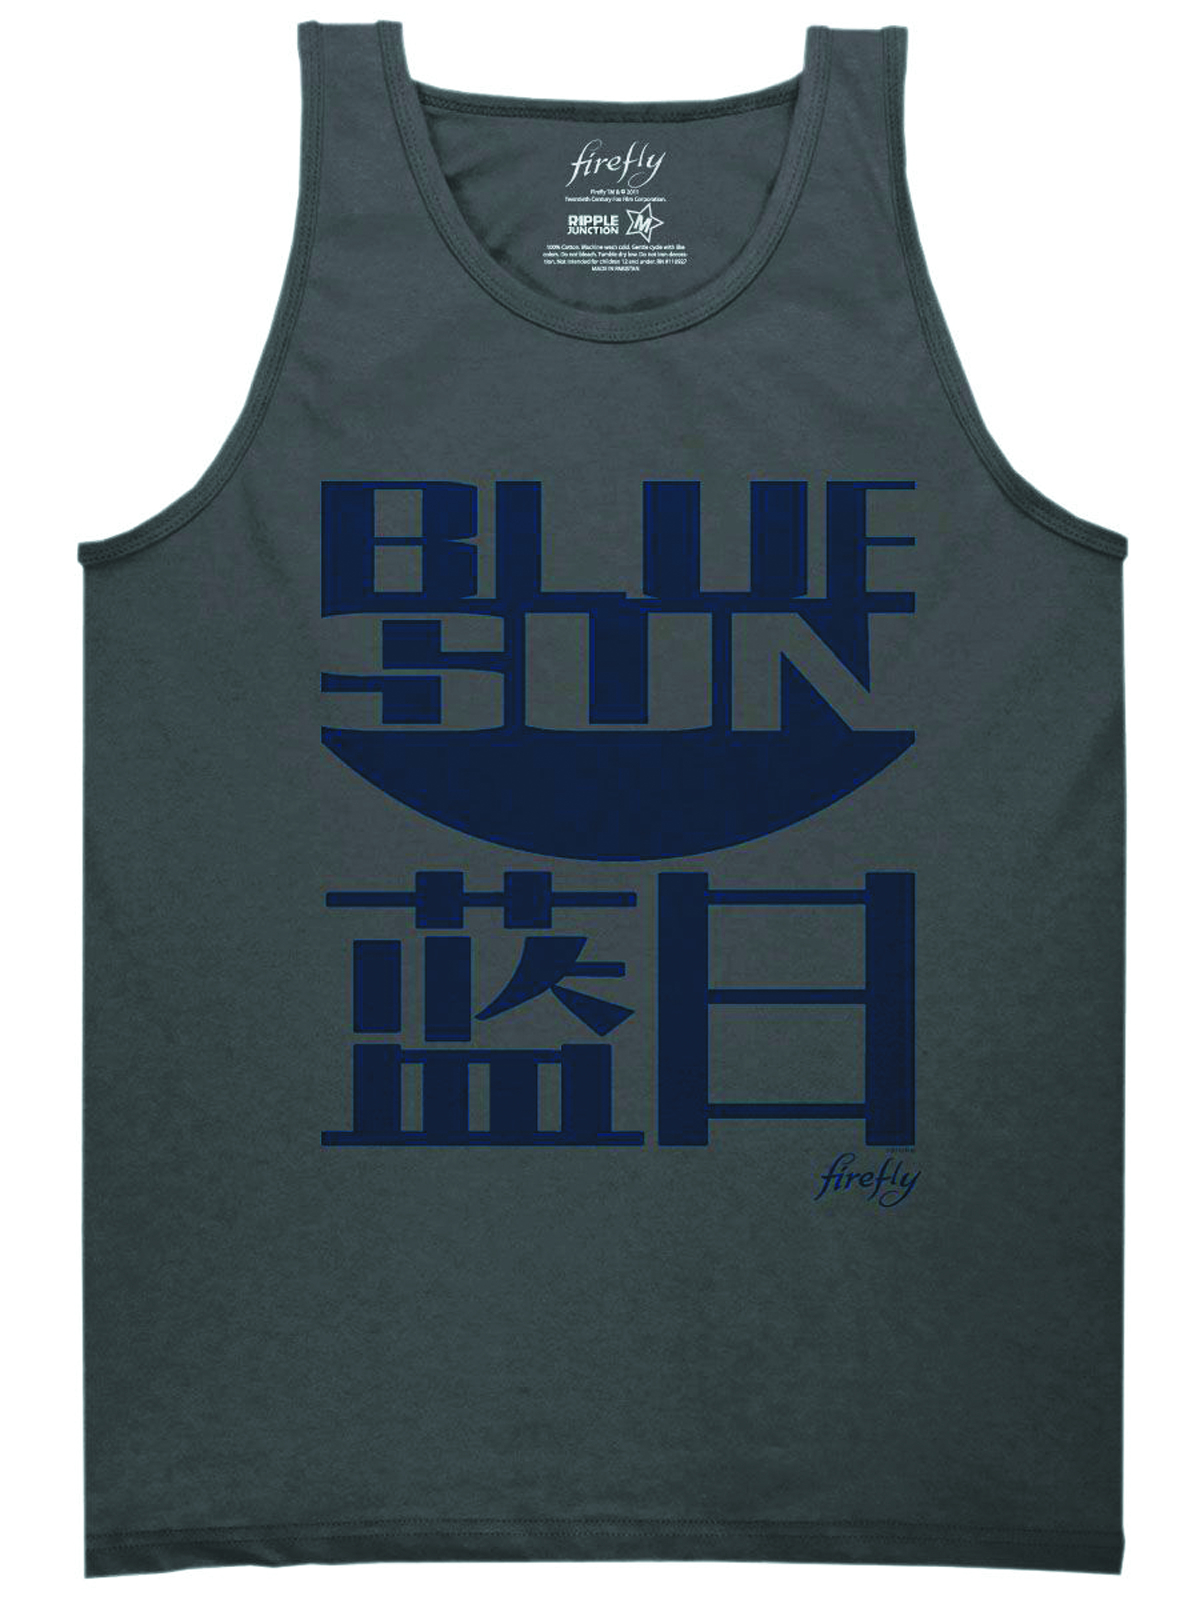 FIREFLY BLUE SUN PX CHARCOAL TANK LG